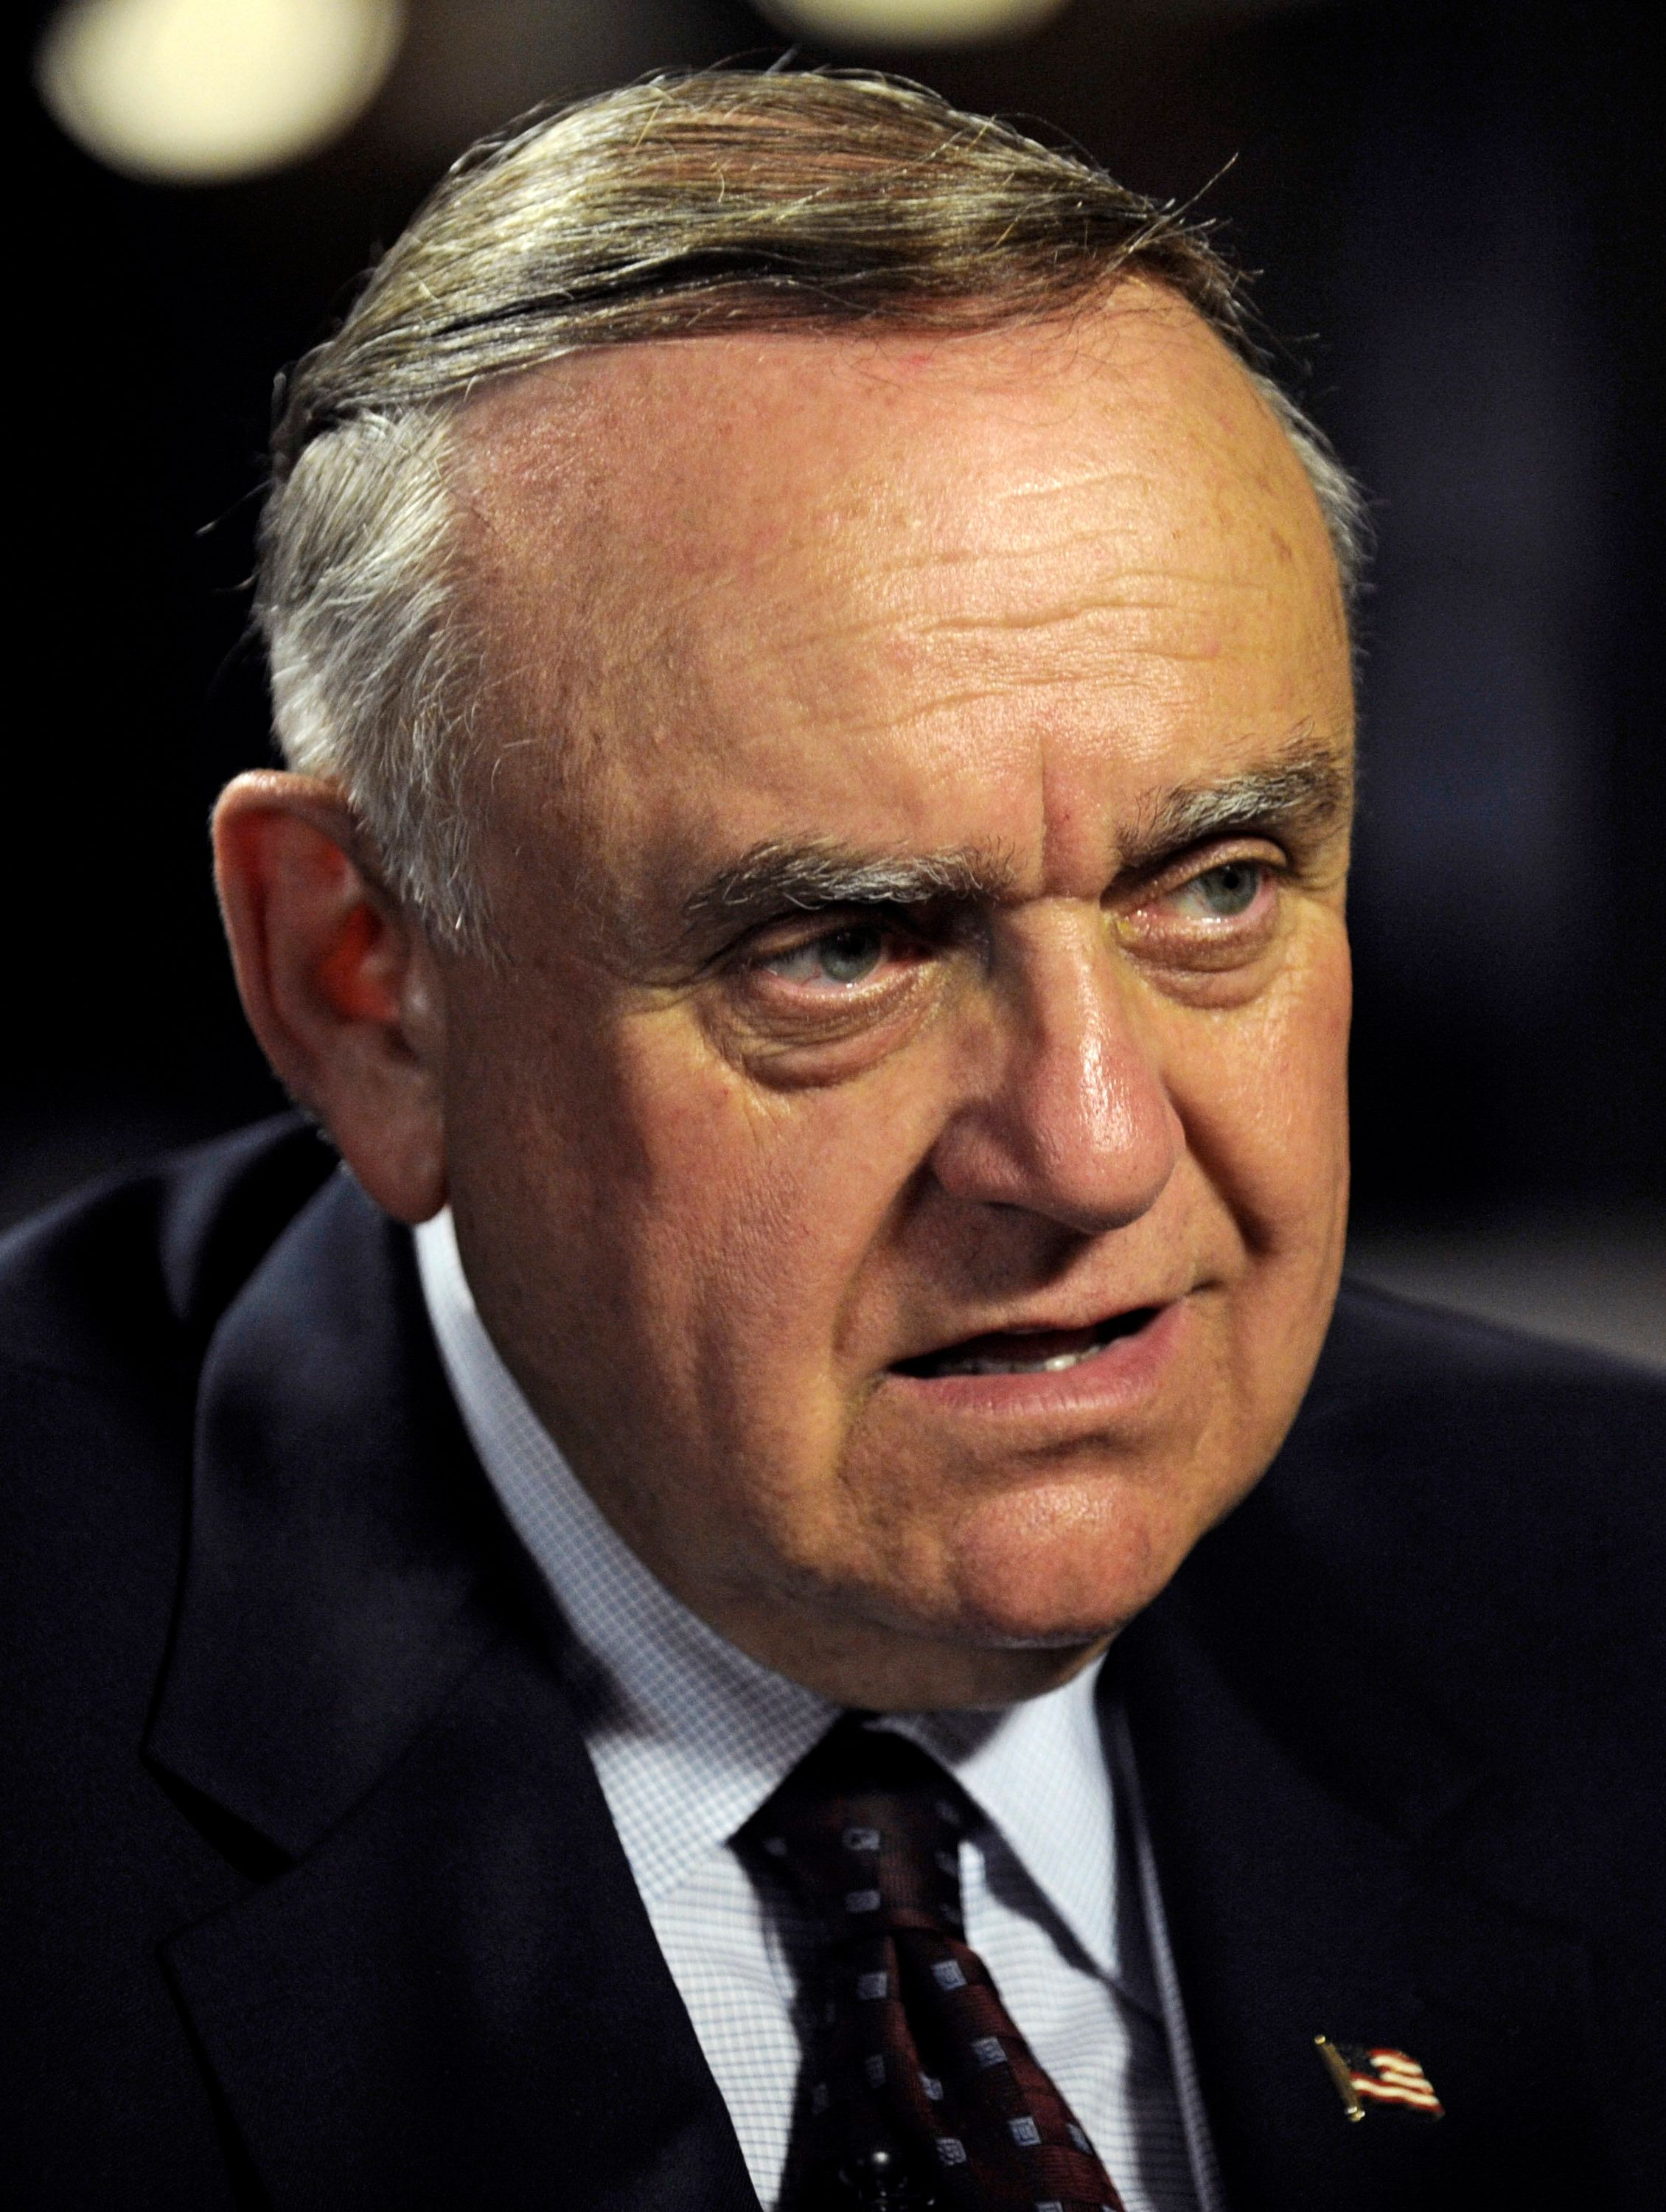 Leon Cooperman, chairman and chief executive officer of Omega Advisors Inc., speaks during an interview in New York, U.S., on Thursday, March 24, 2011. Cooperman said the U.S. economy can absorb oil prices of up to $130 a barrel and still grow more than 3 percent in 2011. Photographer: Louis Lanzano/Bloomberg via Getty Images